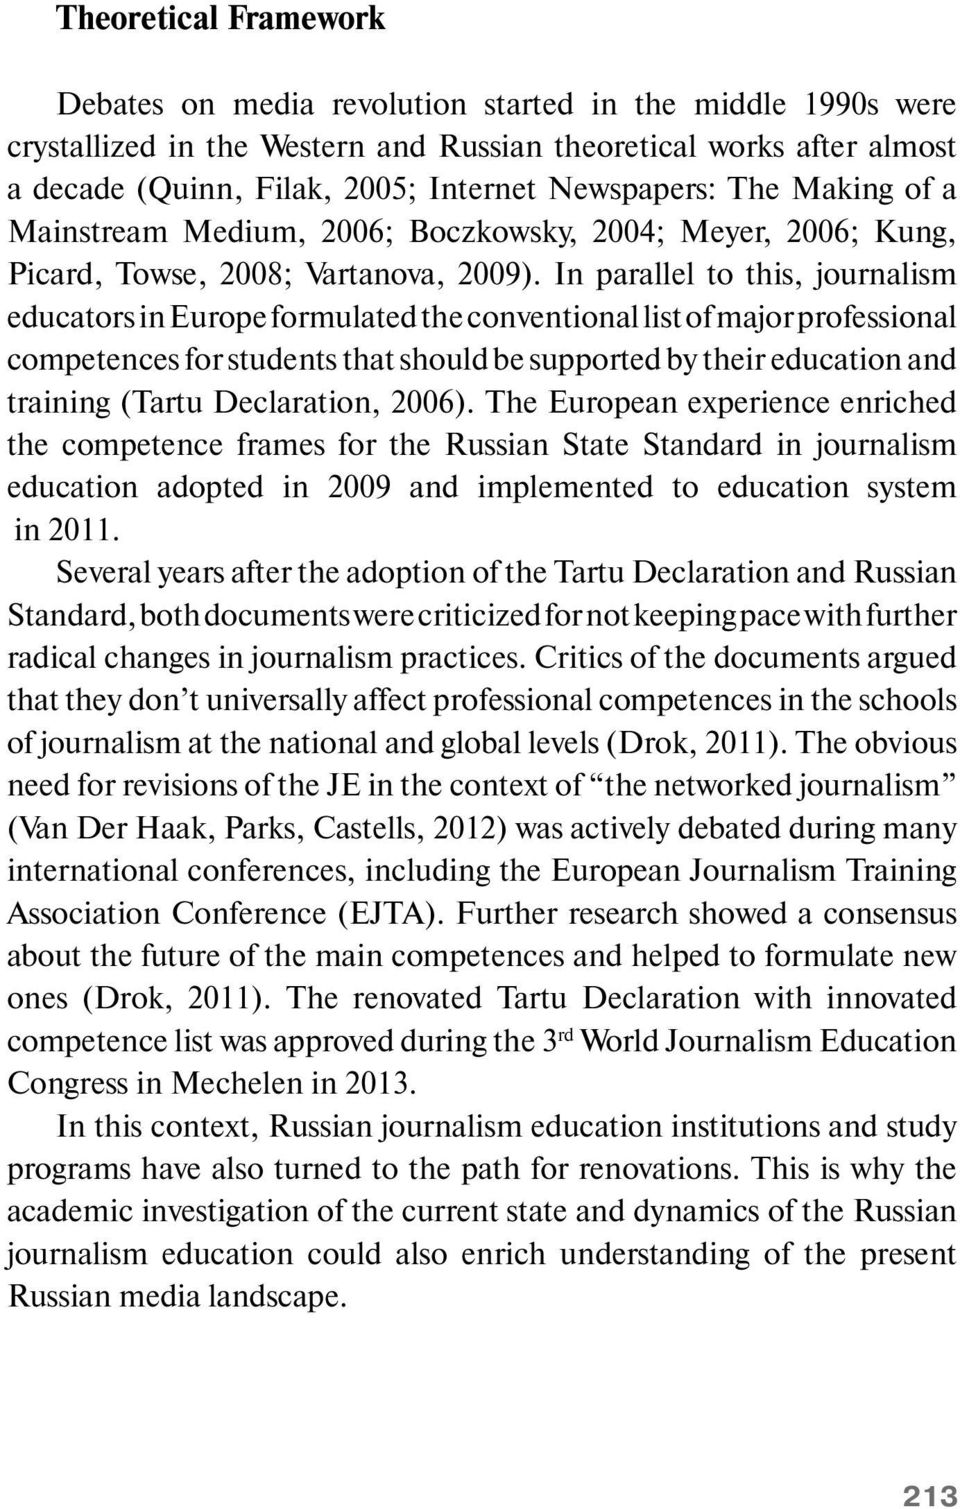 In parallel to this, journalism educators in Europe formulated the conventional list of major professional competences for students that should be supported by their education and training (Tartu